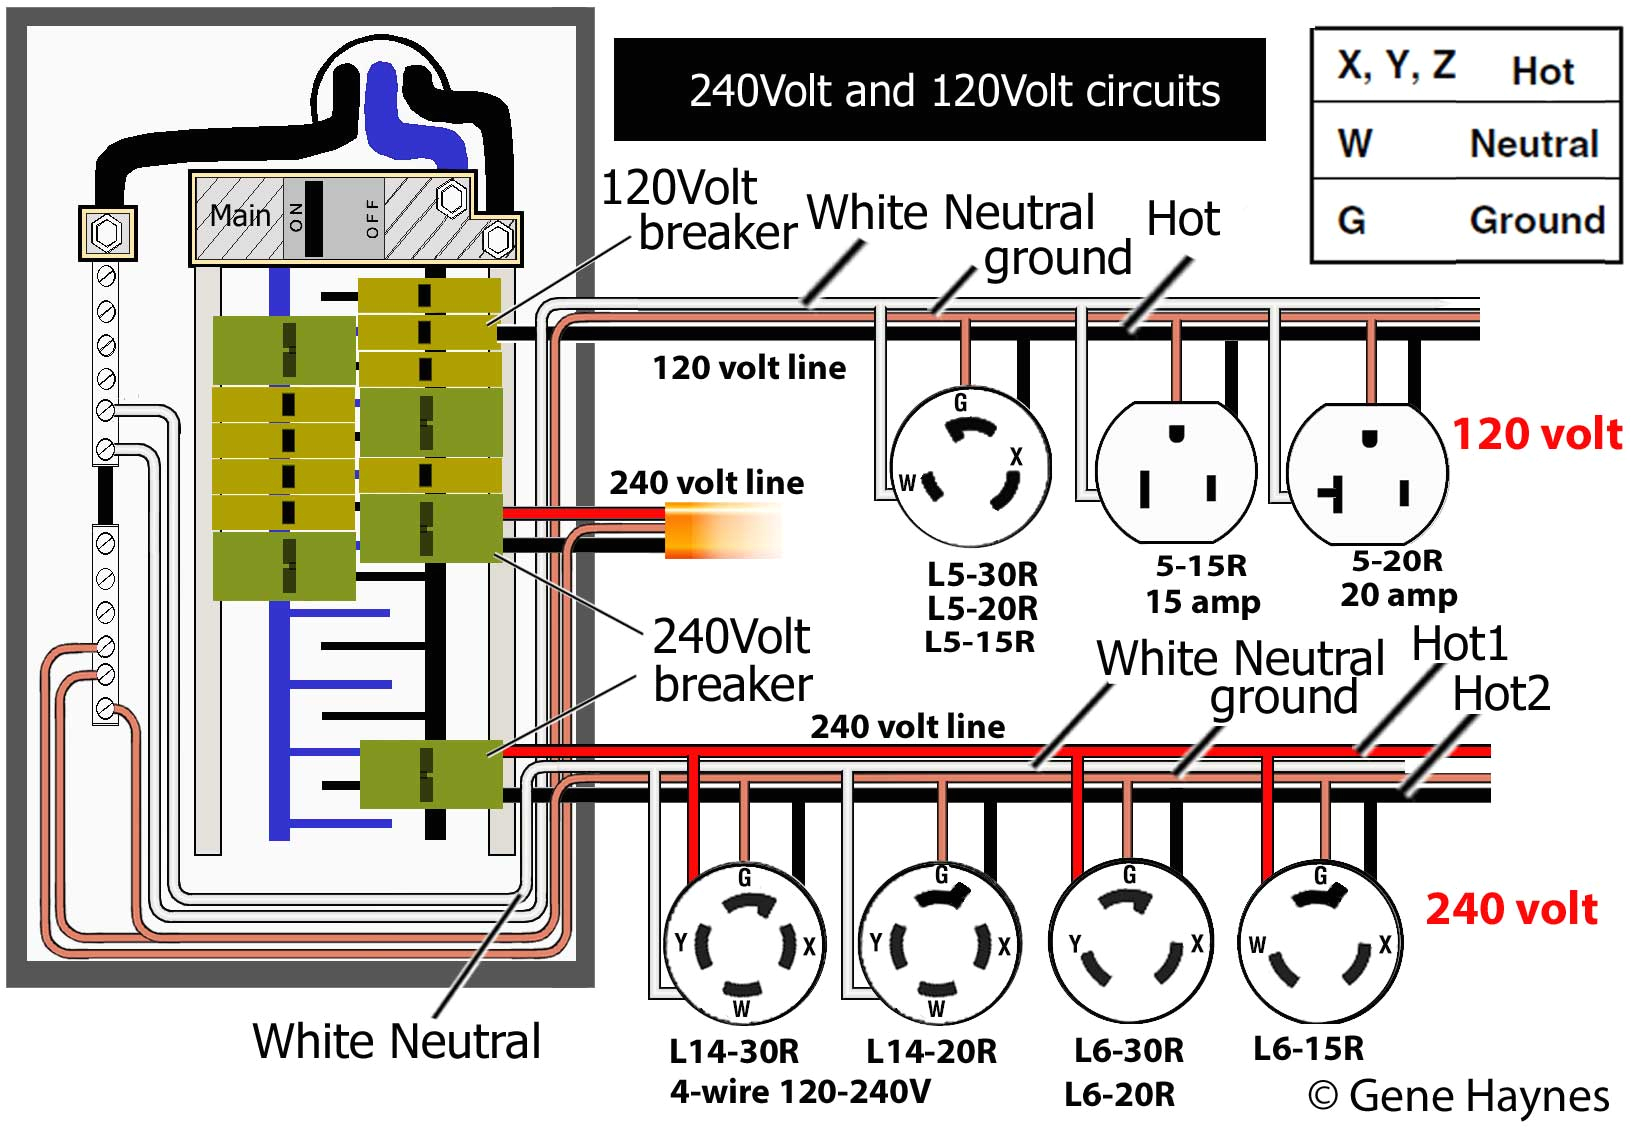 120v wiring diagram wiring diagram 120v 30 amp wiring diagram wiring diagram120v 30 amp wiring diagram